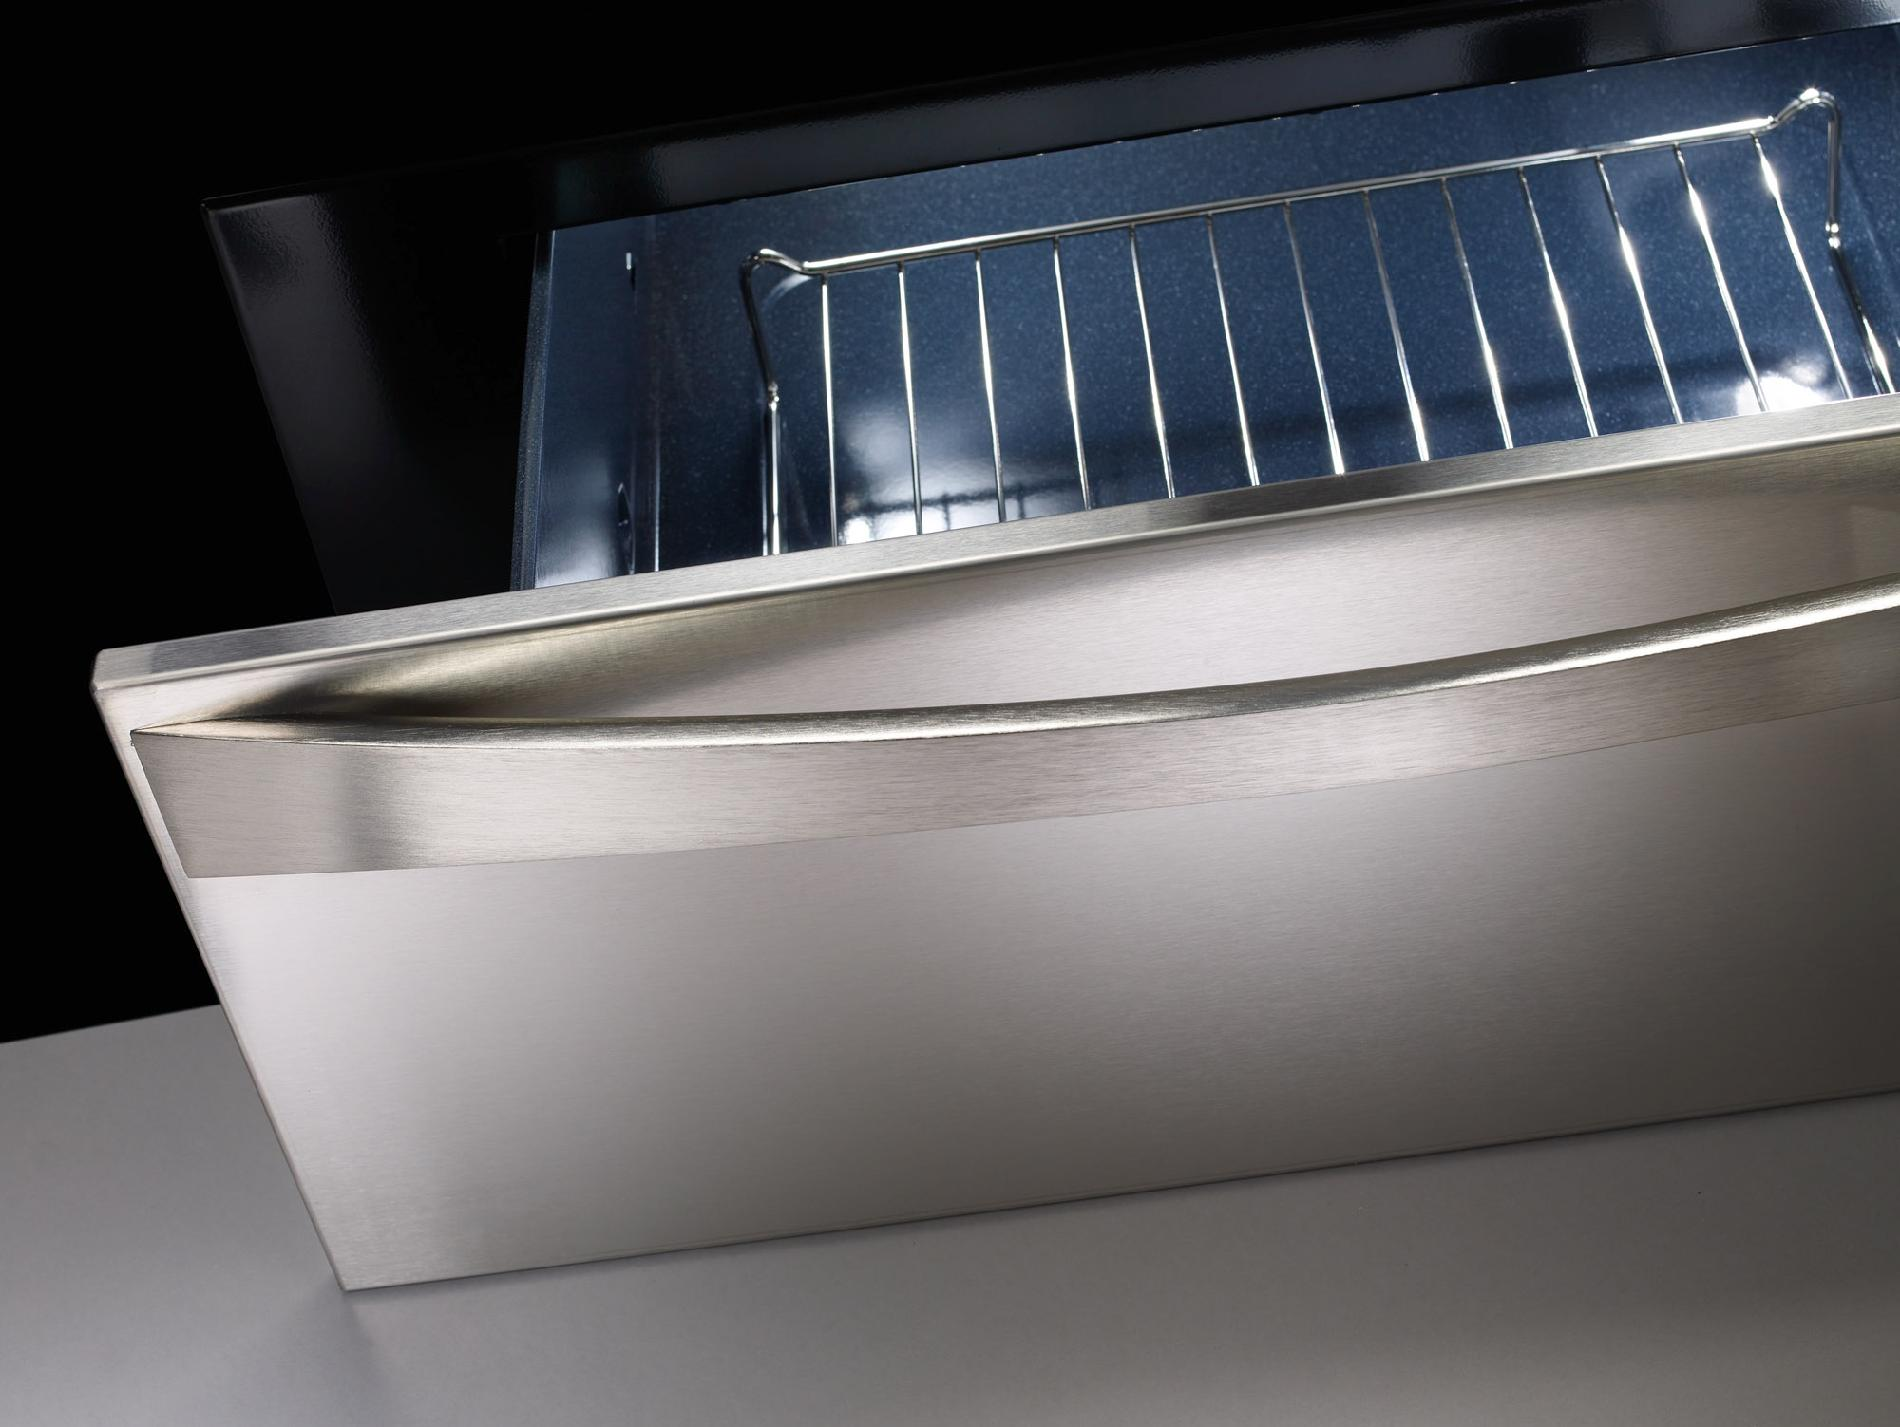 "Kenmore Elite 30"" Warming Drawer"